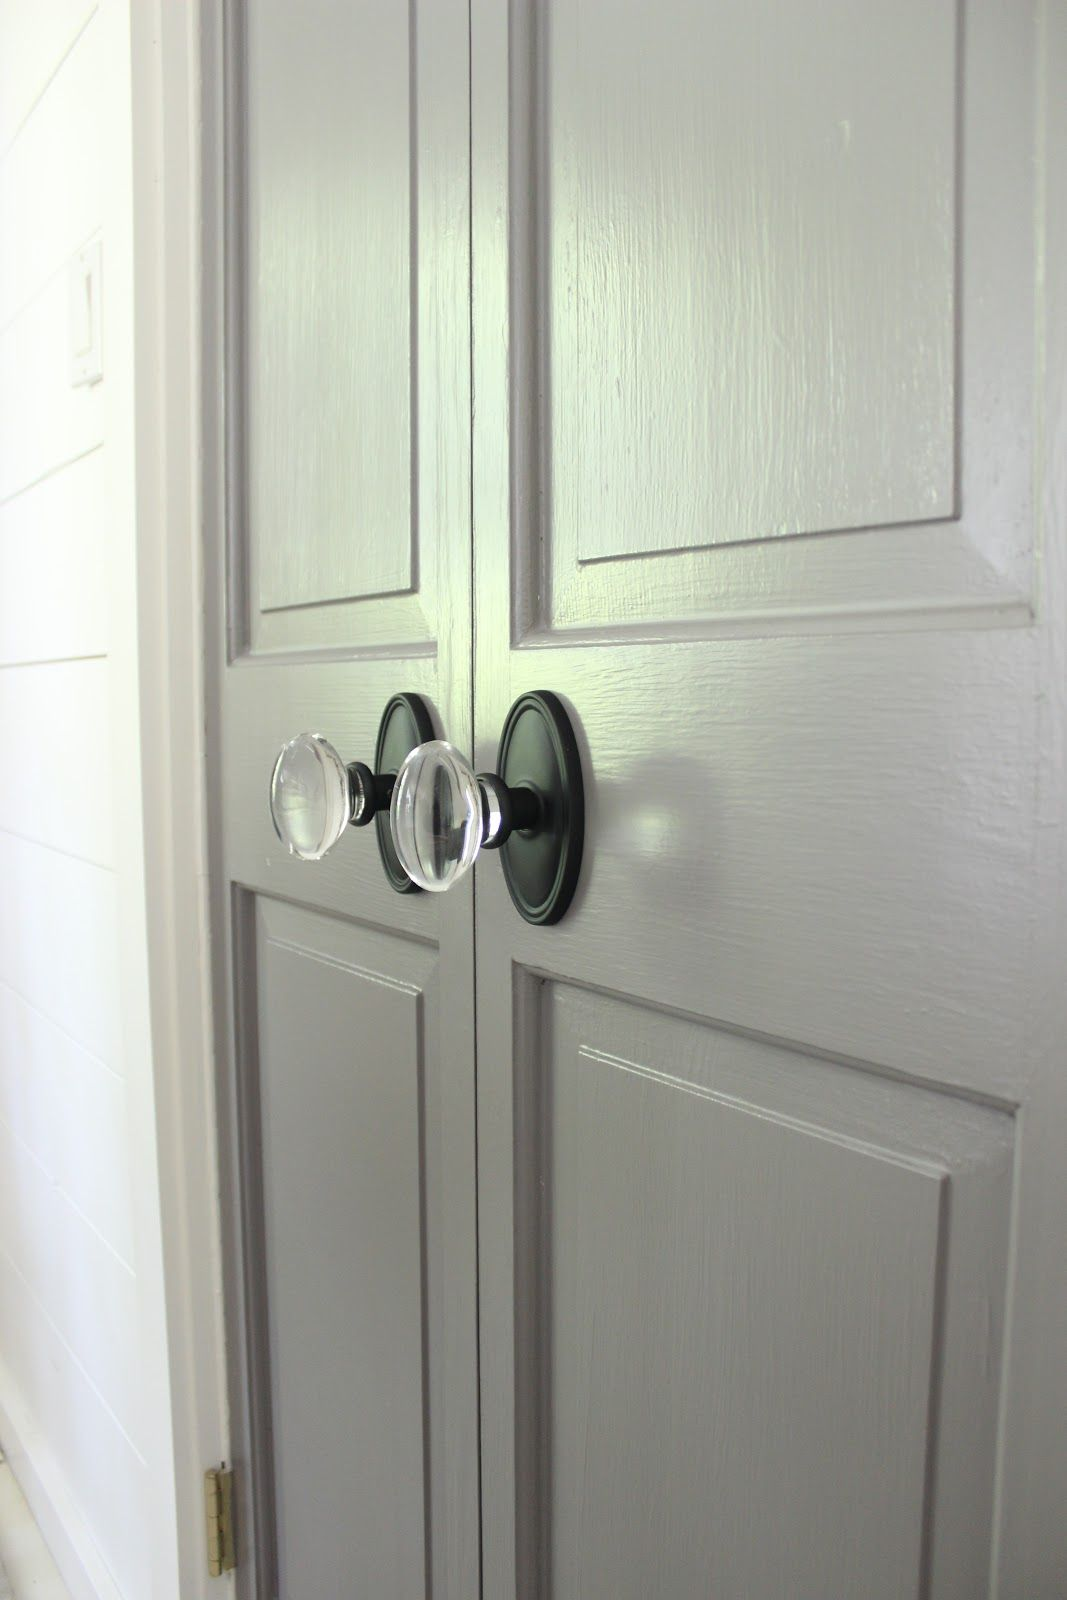 Pin by benjesbride on vista construction puertas casas - Interior door handles and hinges ...